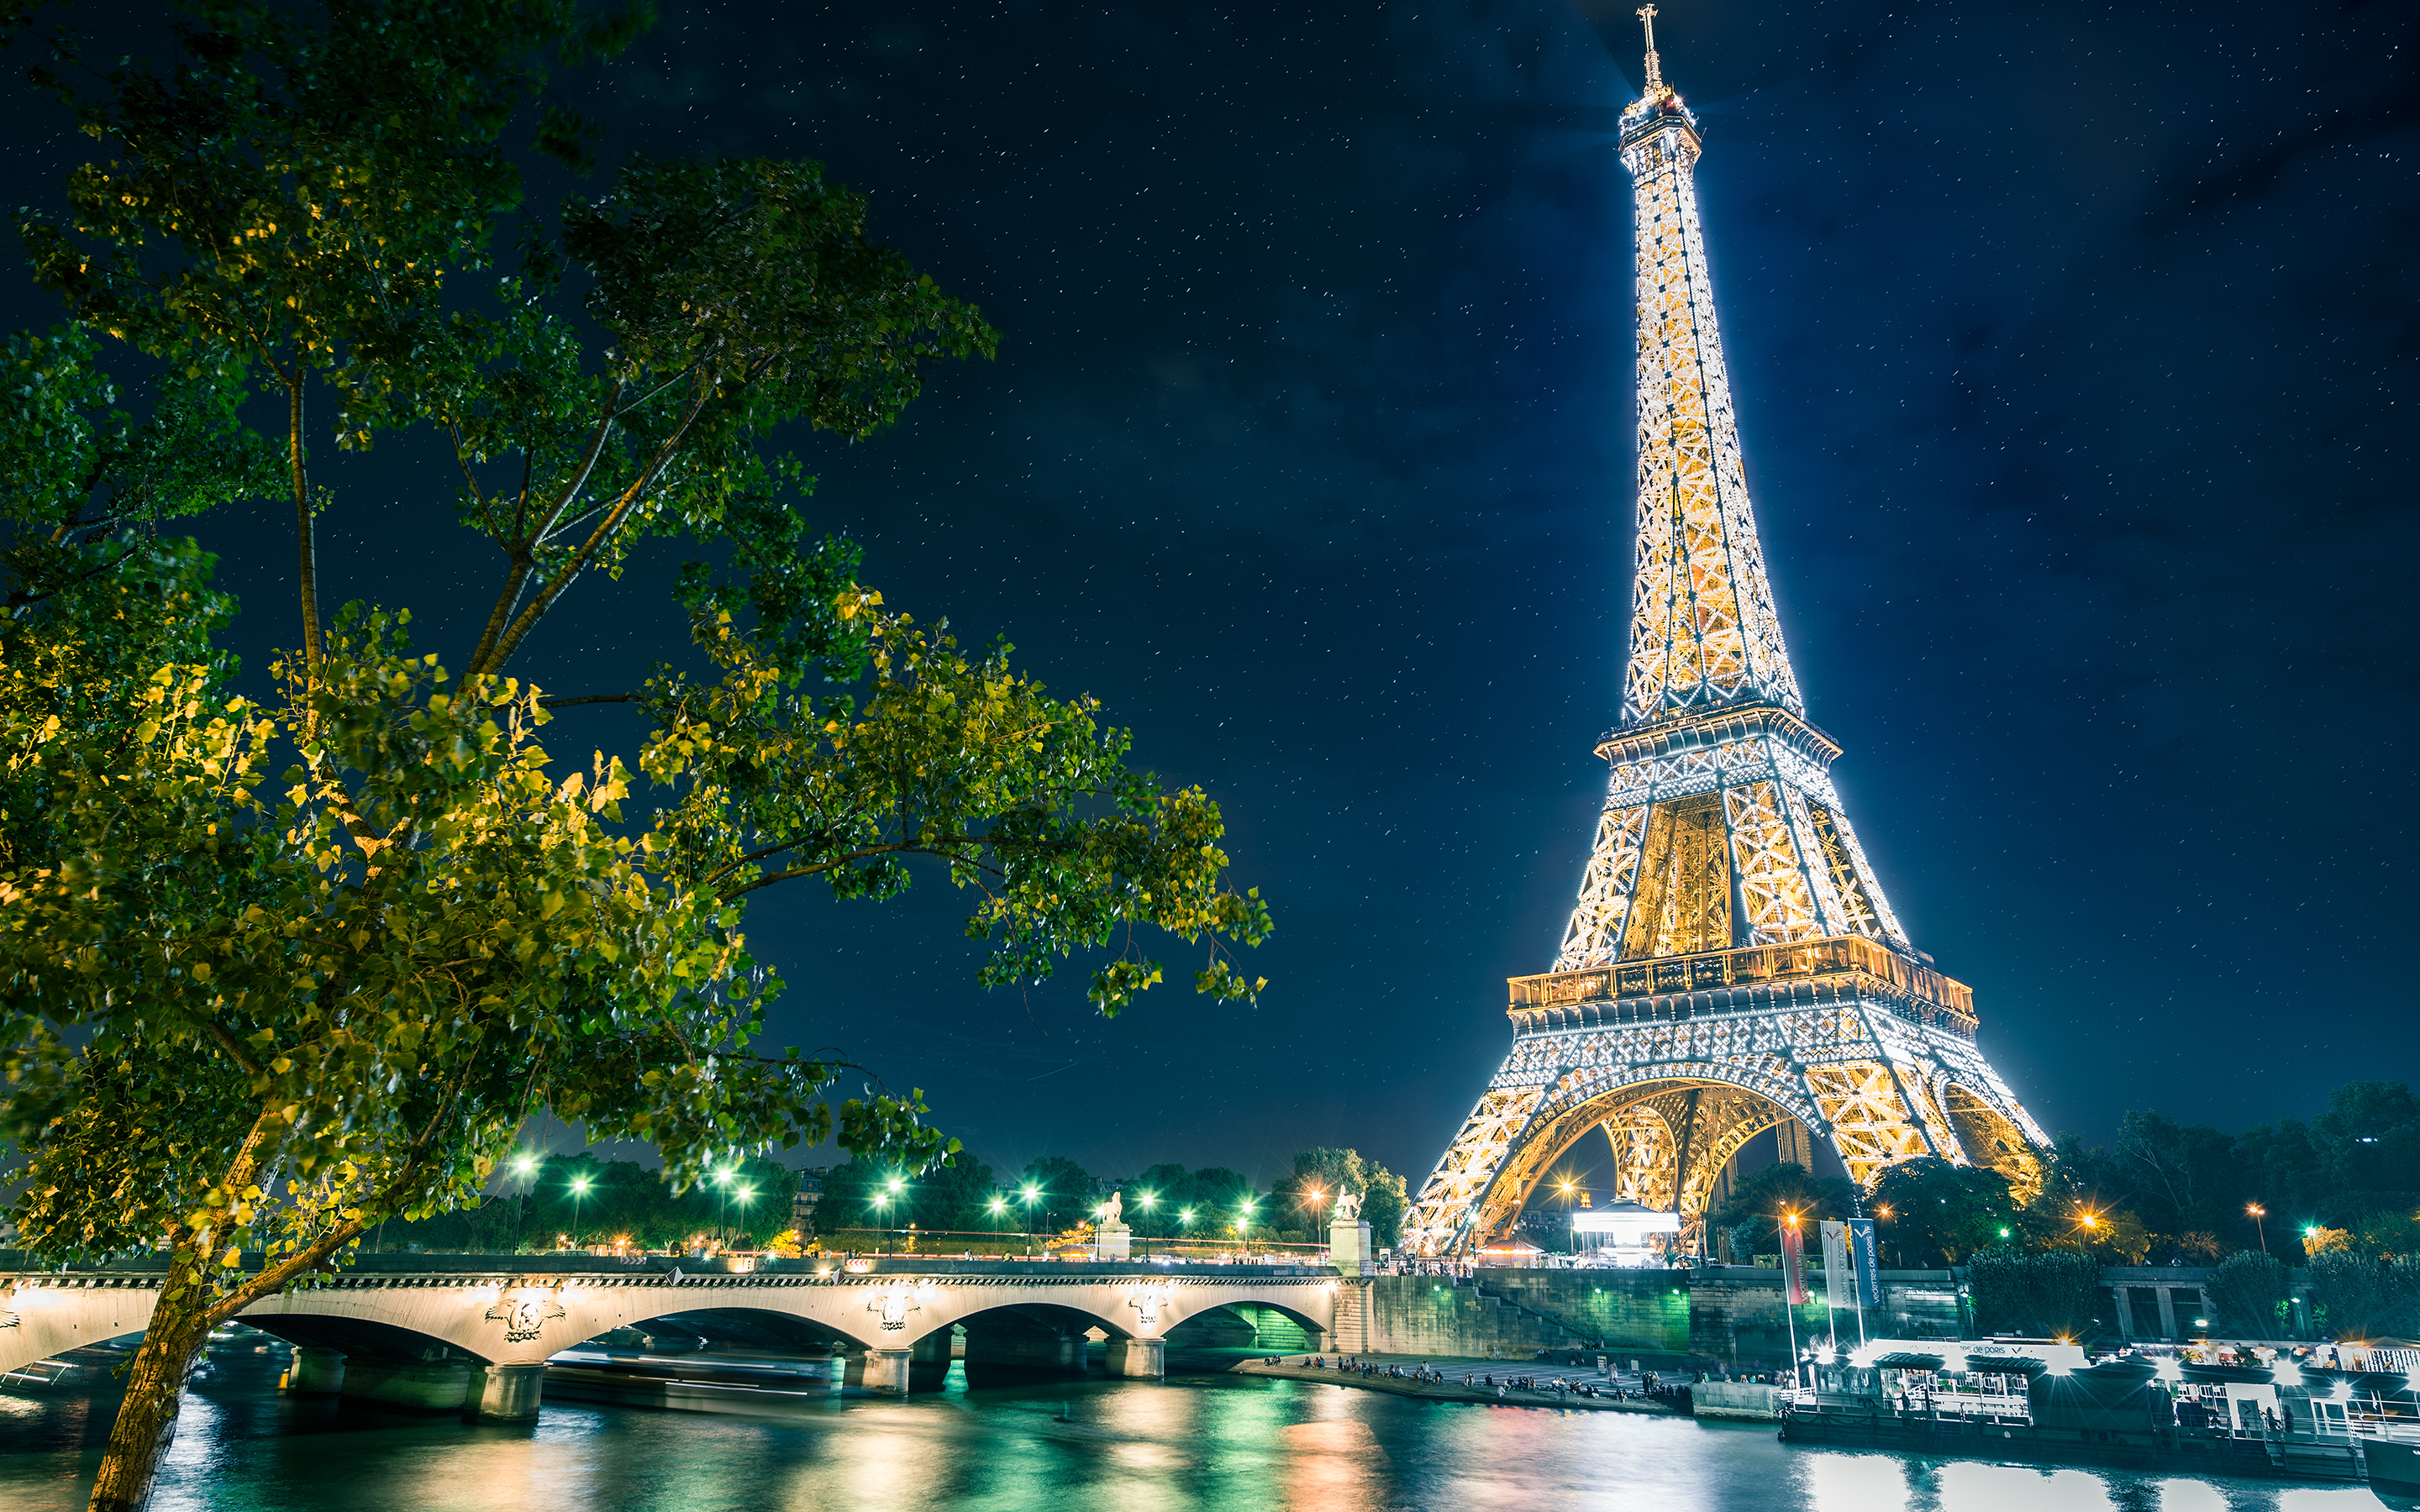 Eiffel Tower At Night Hd Wallpaper Background Image 2880x1800